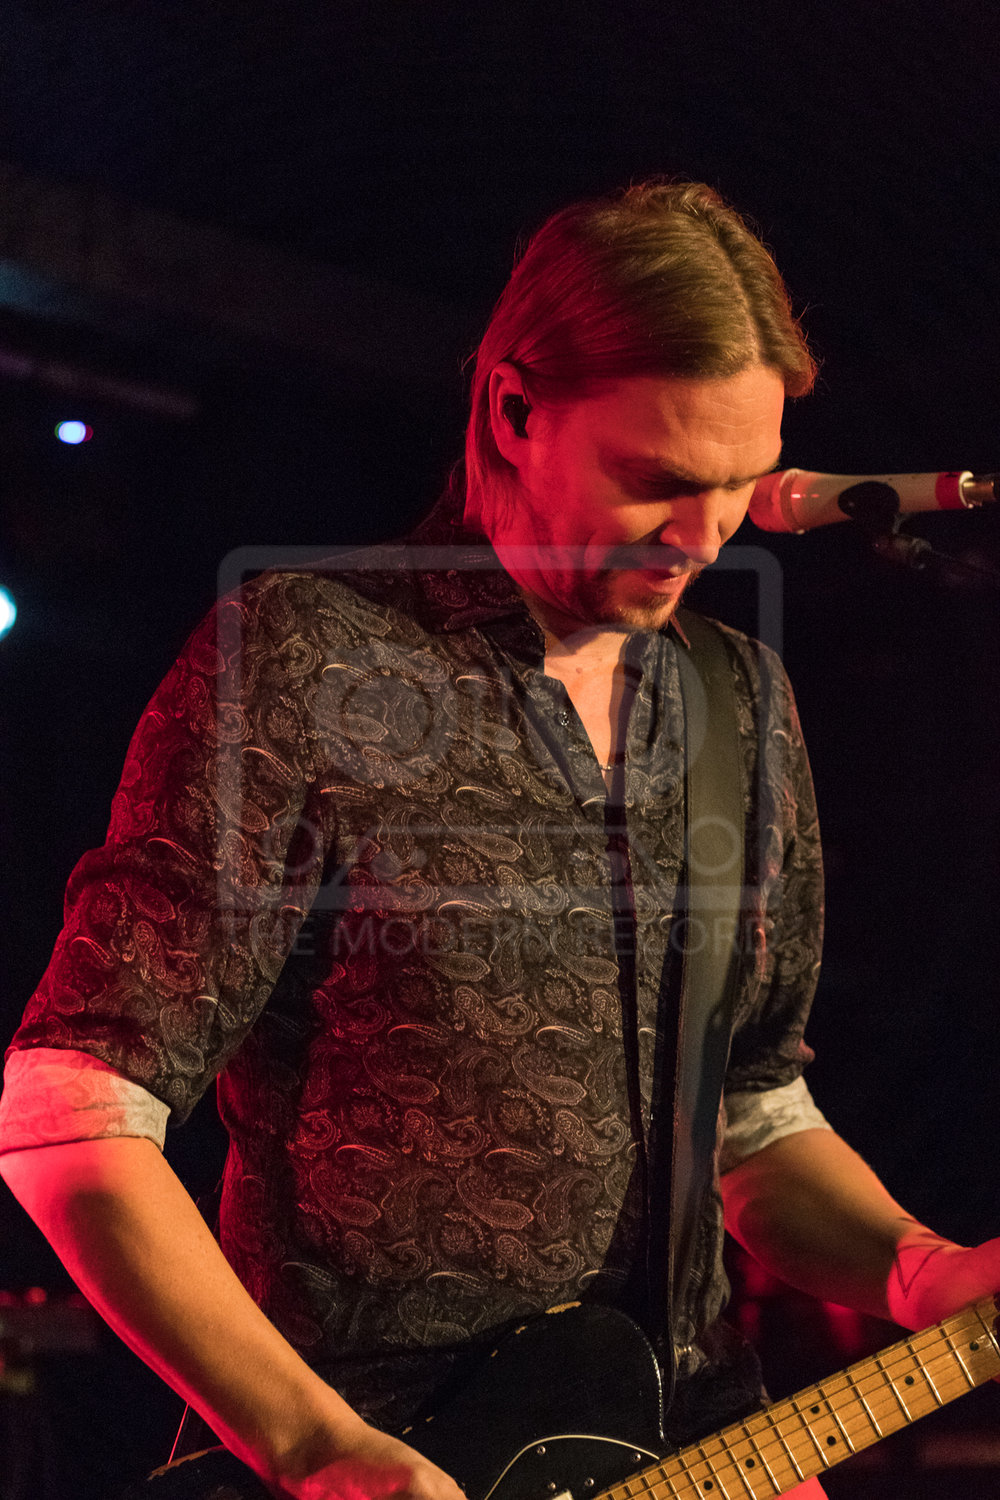 1 - von hertzen brothers - Newcastle University SU, Newcastle - 08-12-18 Picture by Will Gorman Photo.JPG